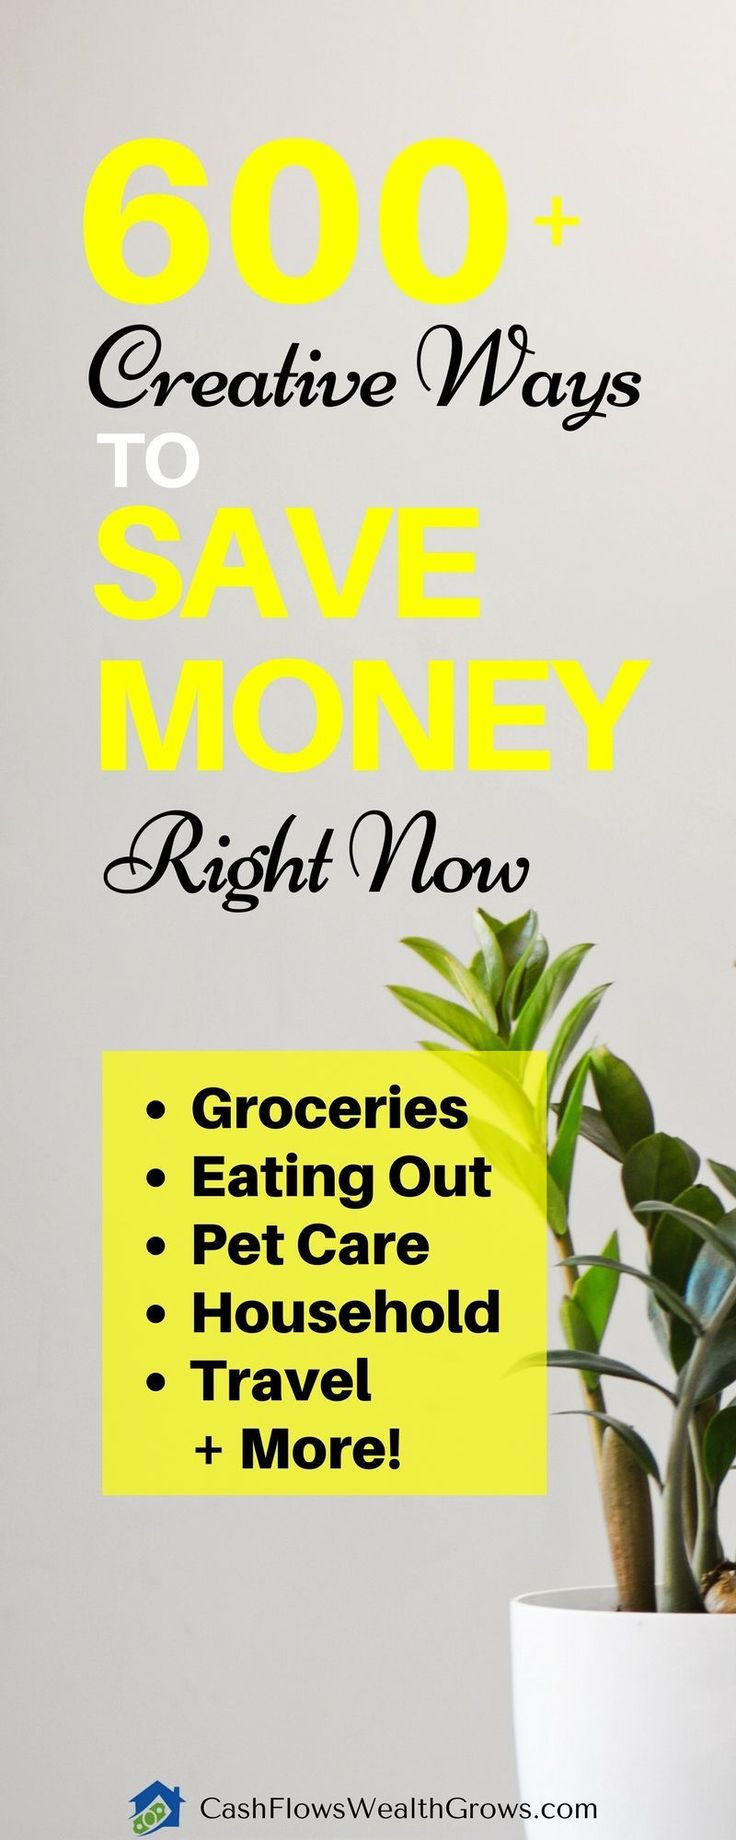 600+ Creative Ways To Save Money Right Now | Money Saving Tips | Personal Finance | #FinanceBoard #FinanceManager